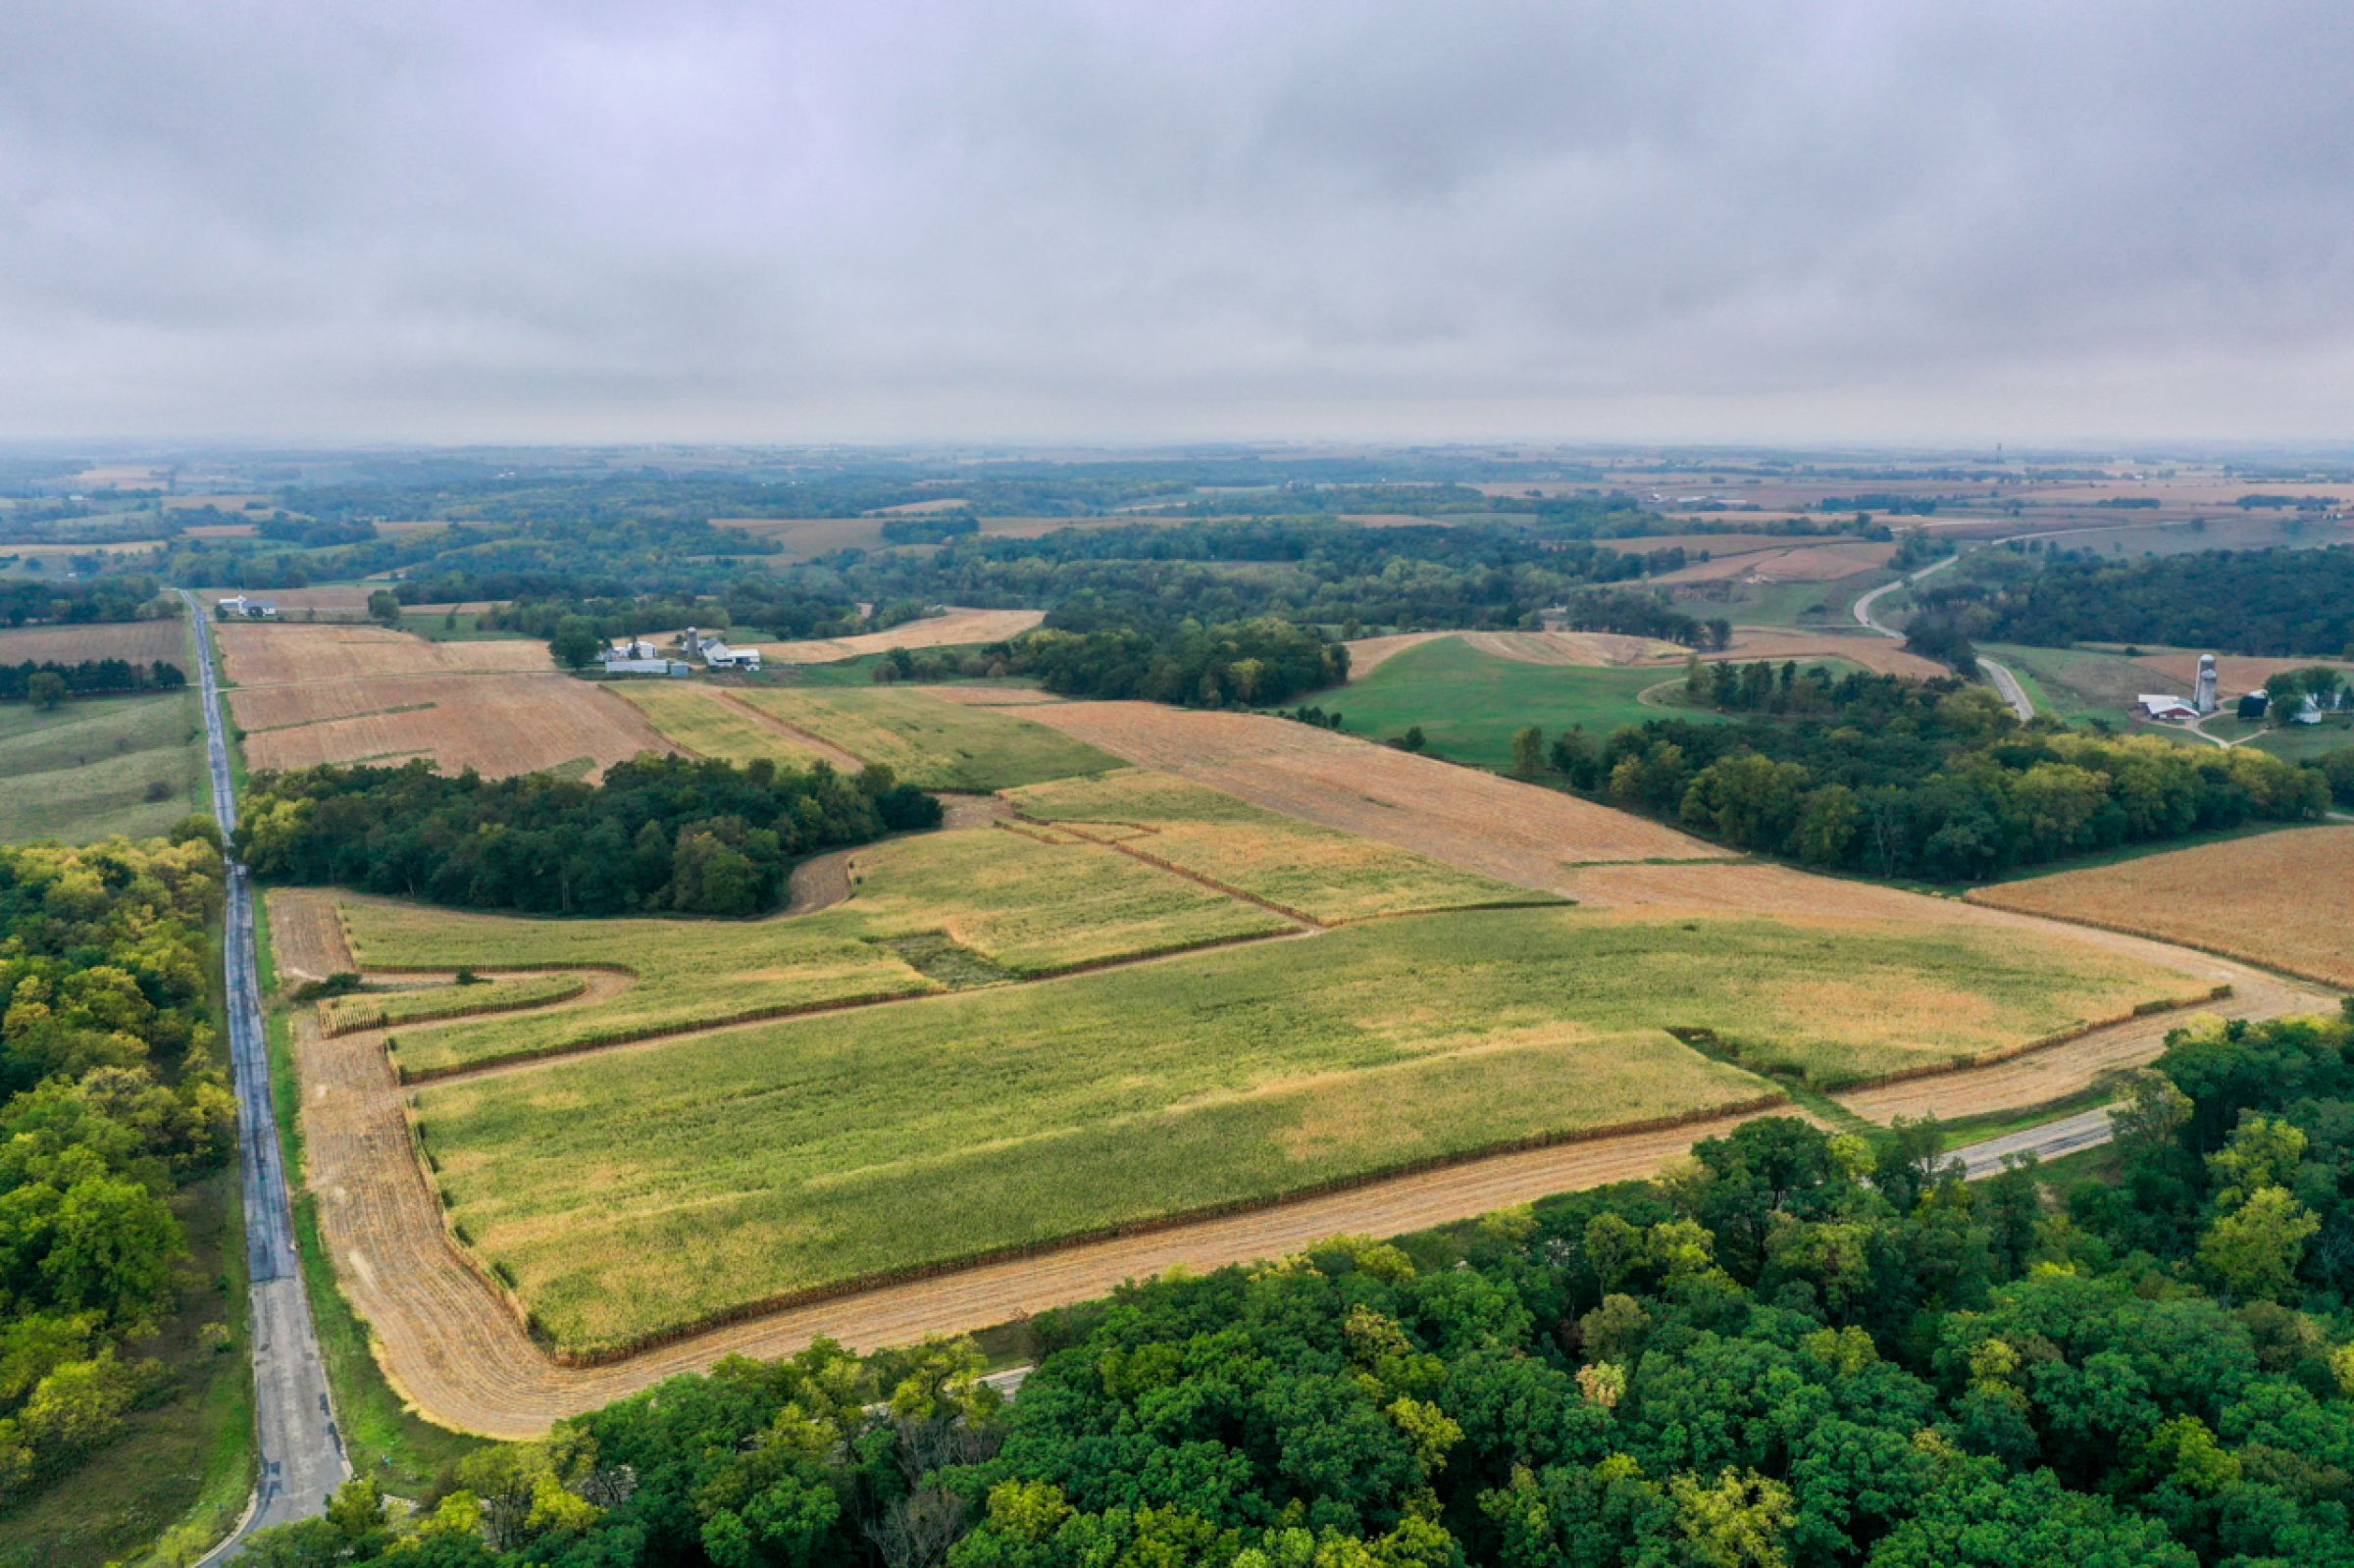 auctions-land-lafayette-county-wisconsin-138-acres-listing-number-15758-3-2021-09-21-155931.jpg